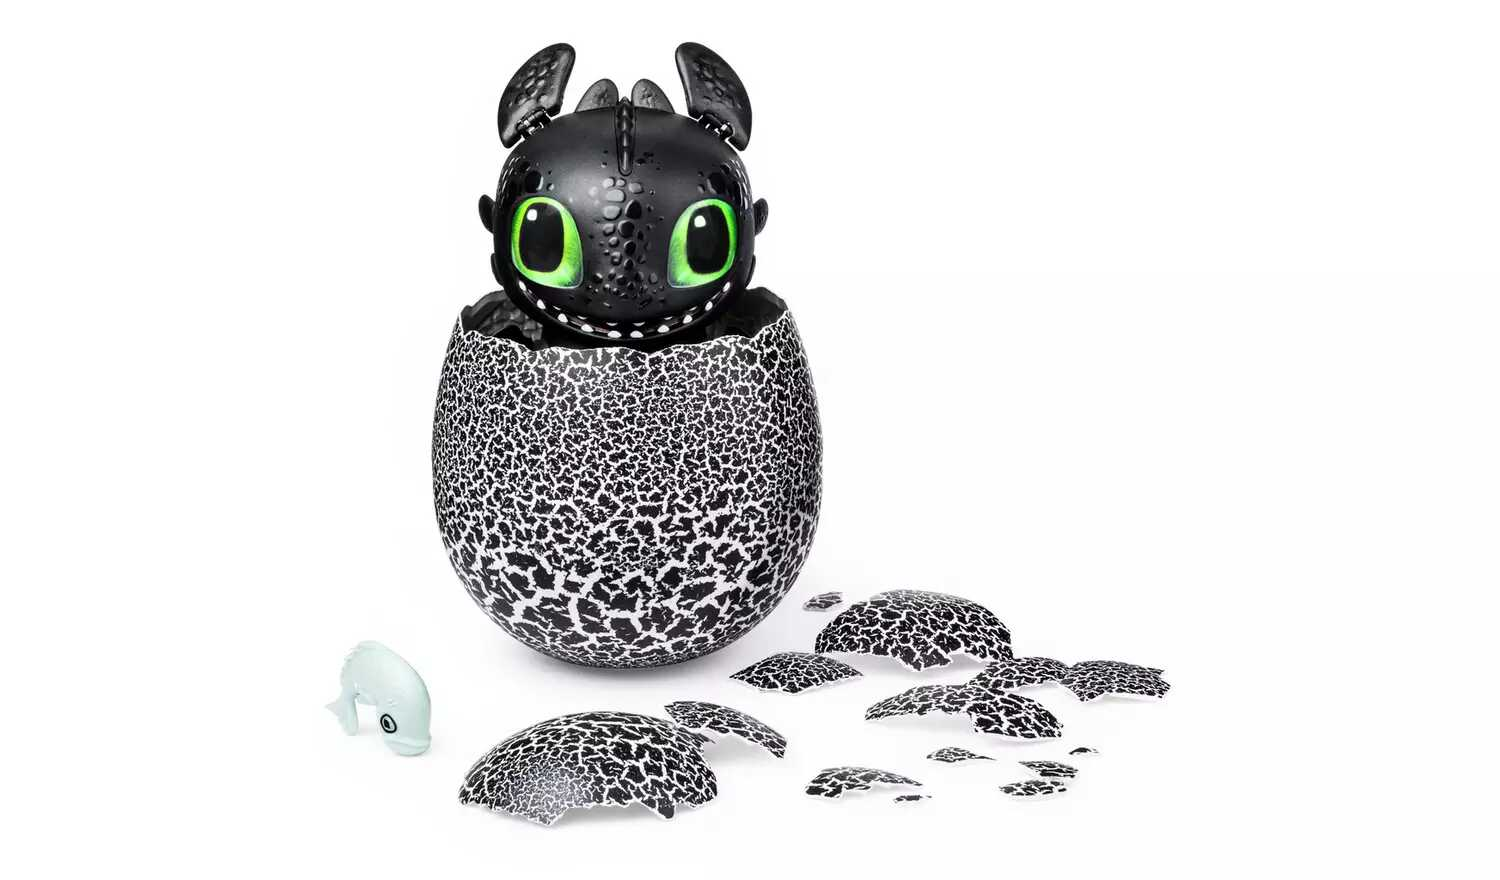 DreamWorks Interactive Hatching Toothless Dragon Egg